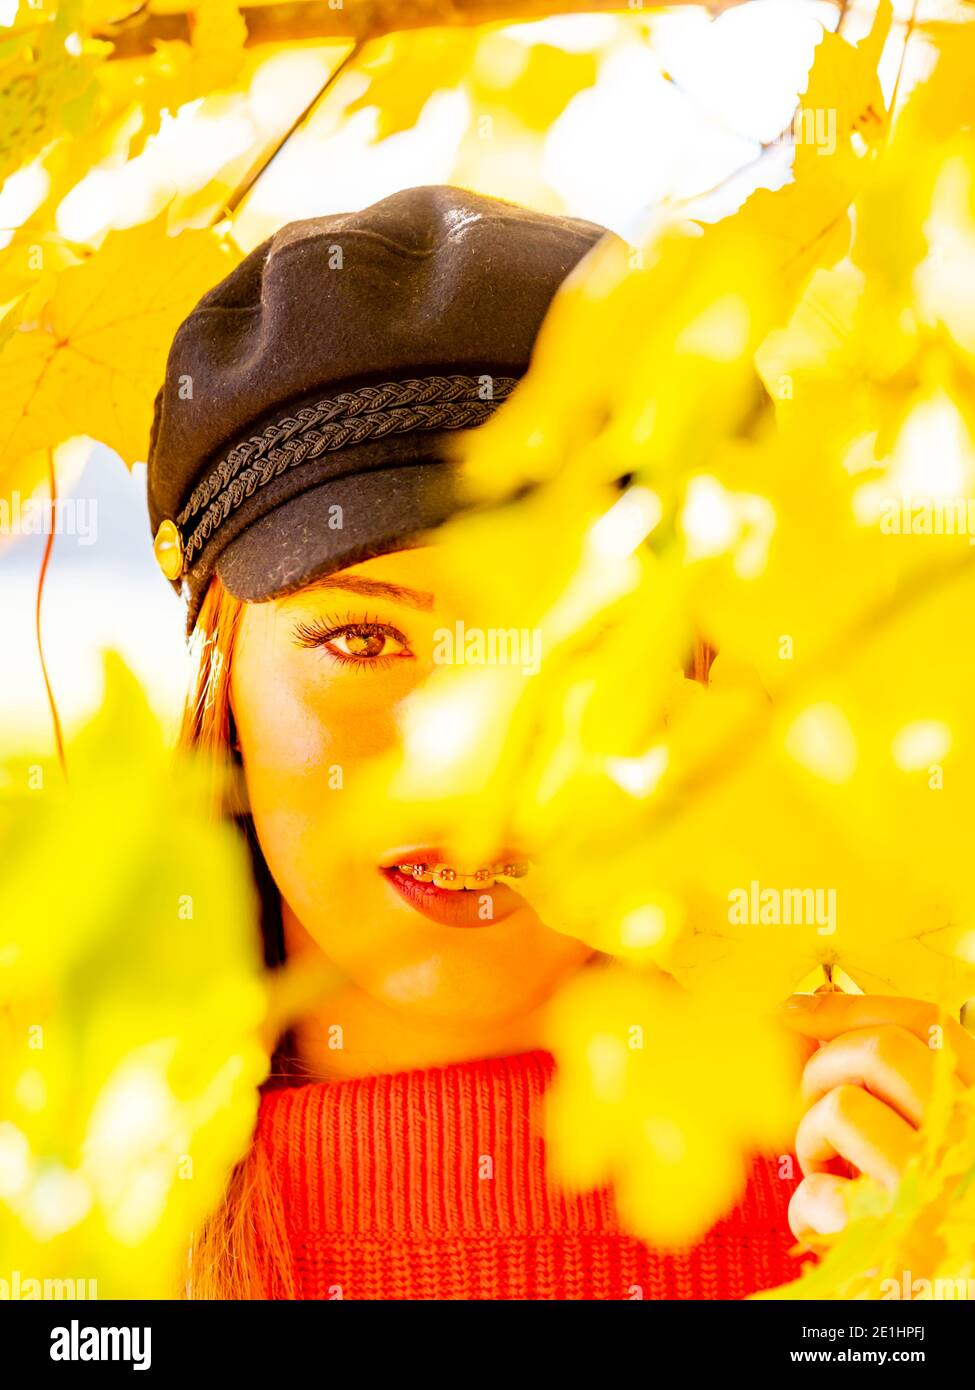 Autumnal warm light and young woman in nature bright Yellow forest countryside country portrait looking peeking peek at camera between leaves branches Stock Photo